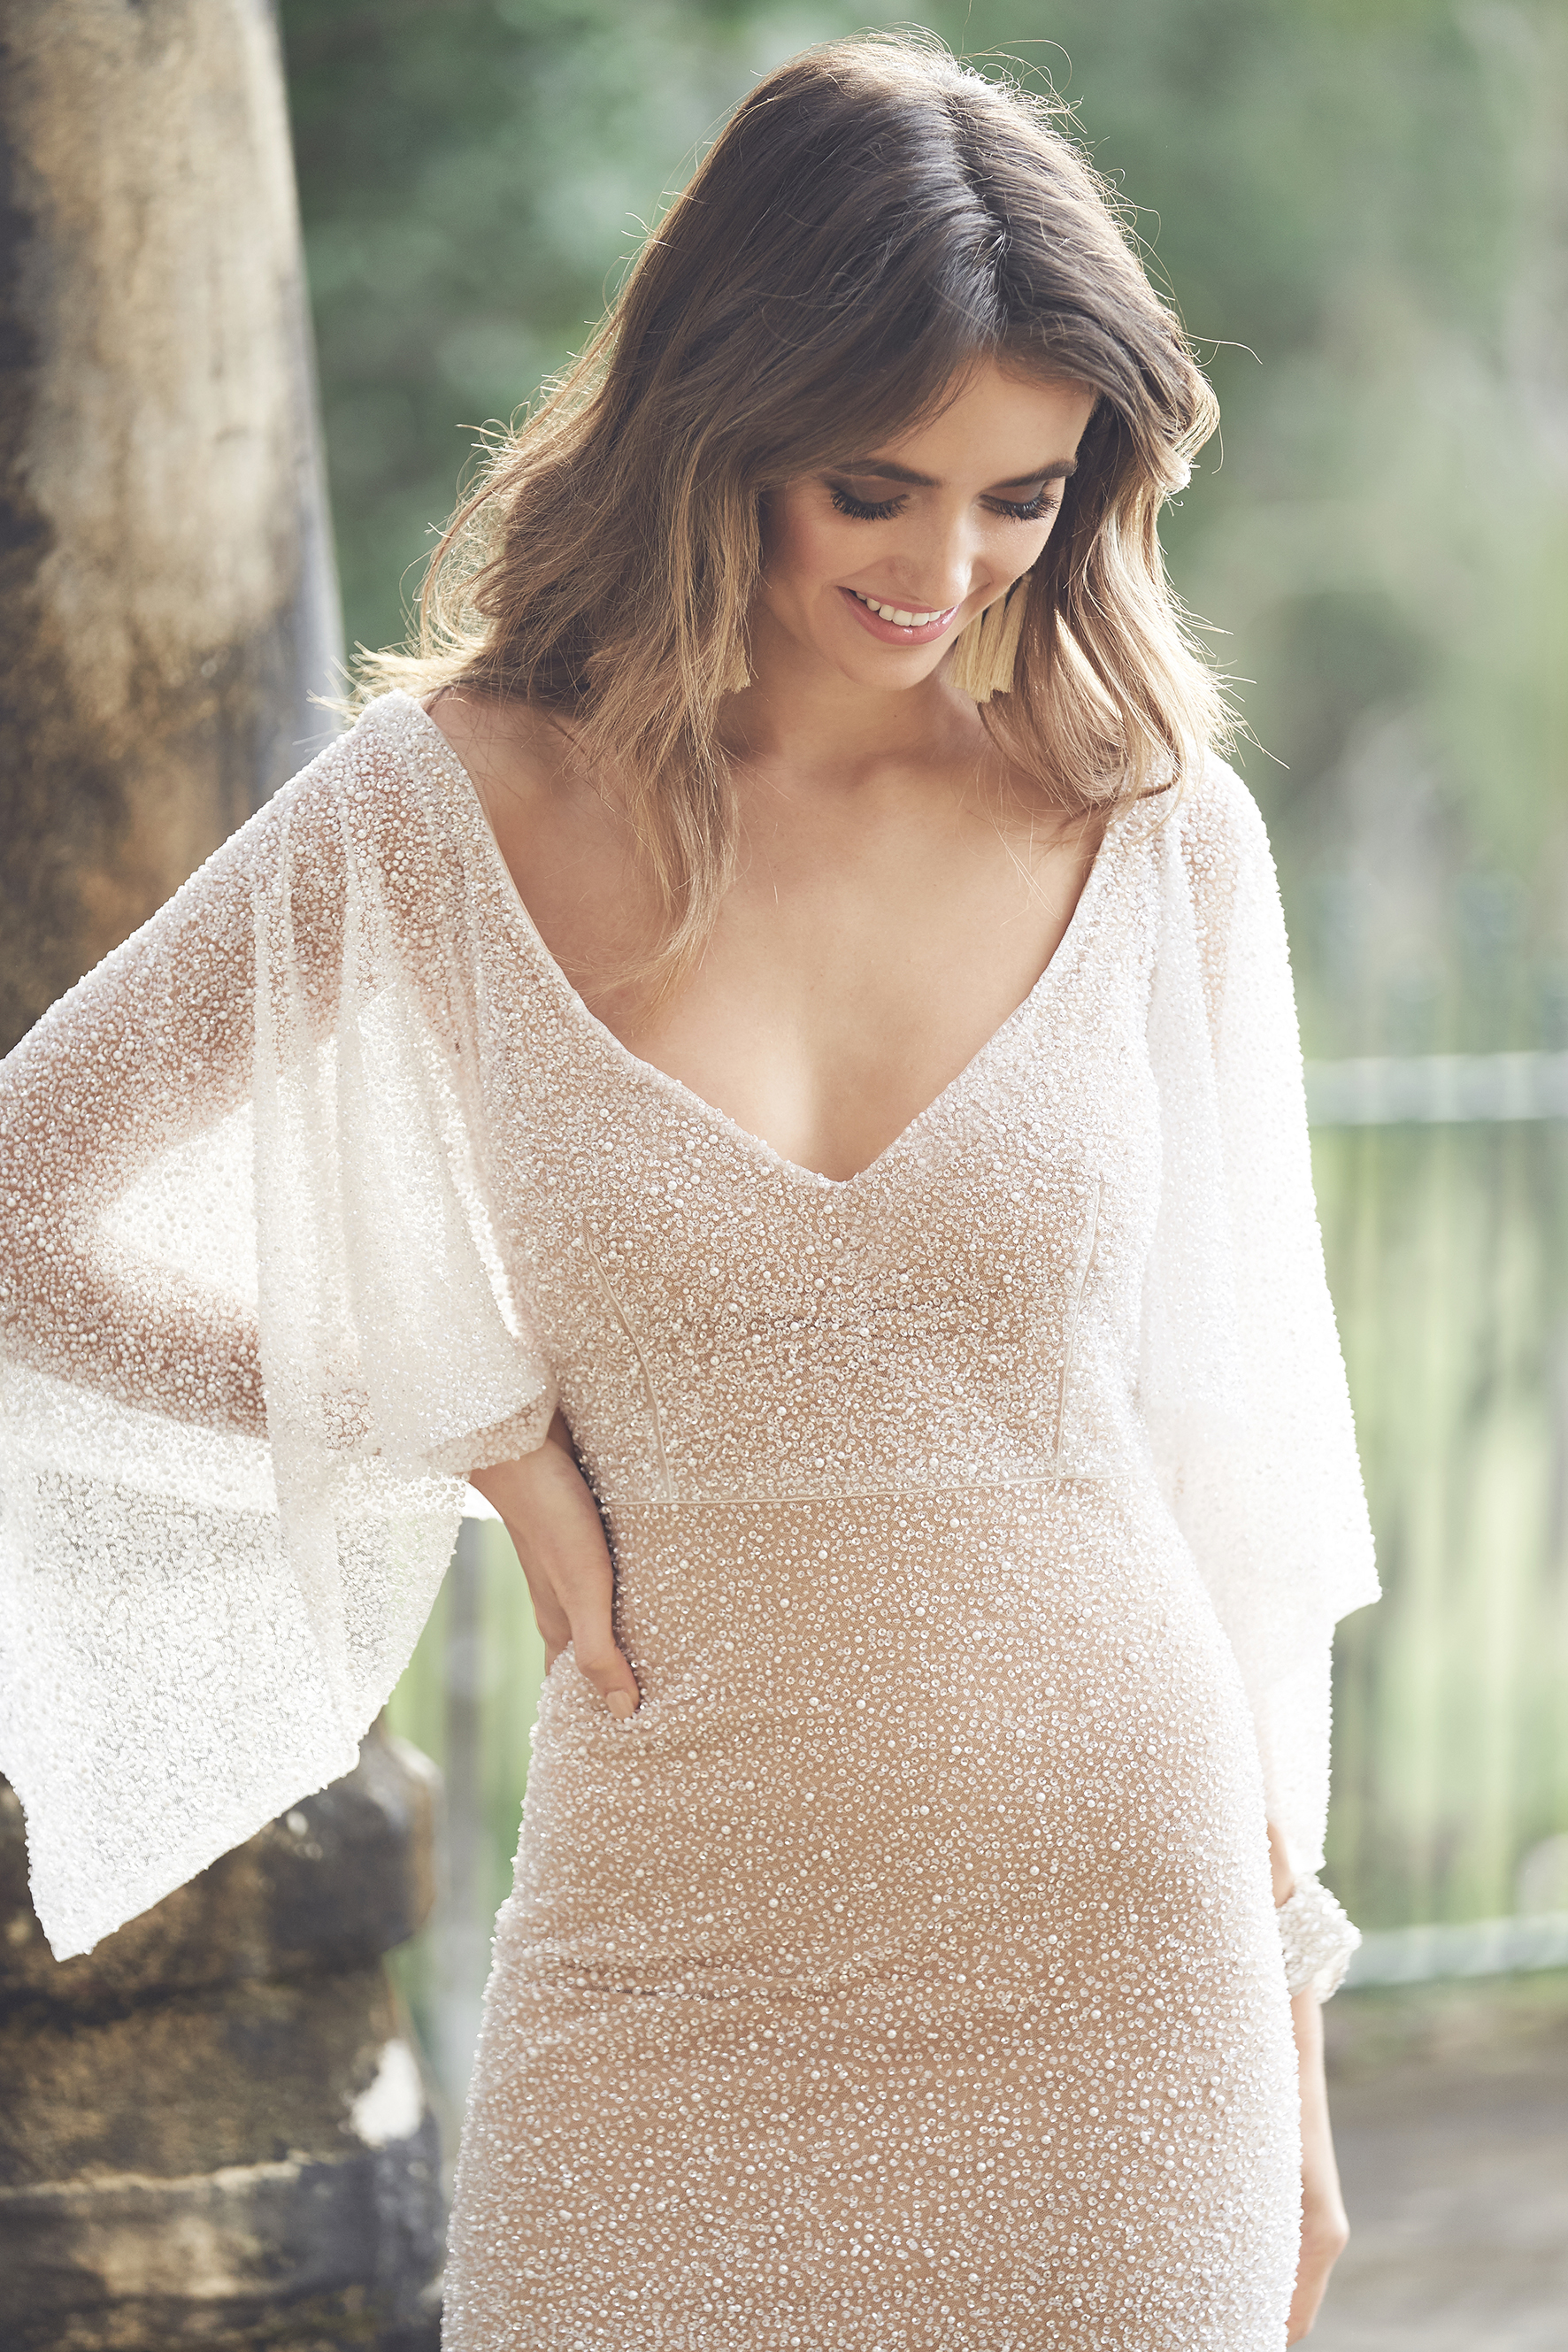 Anna Campbell Bridal | Wanderlust Collection | Wanda Dress | orders@annacampbell.com.au